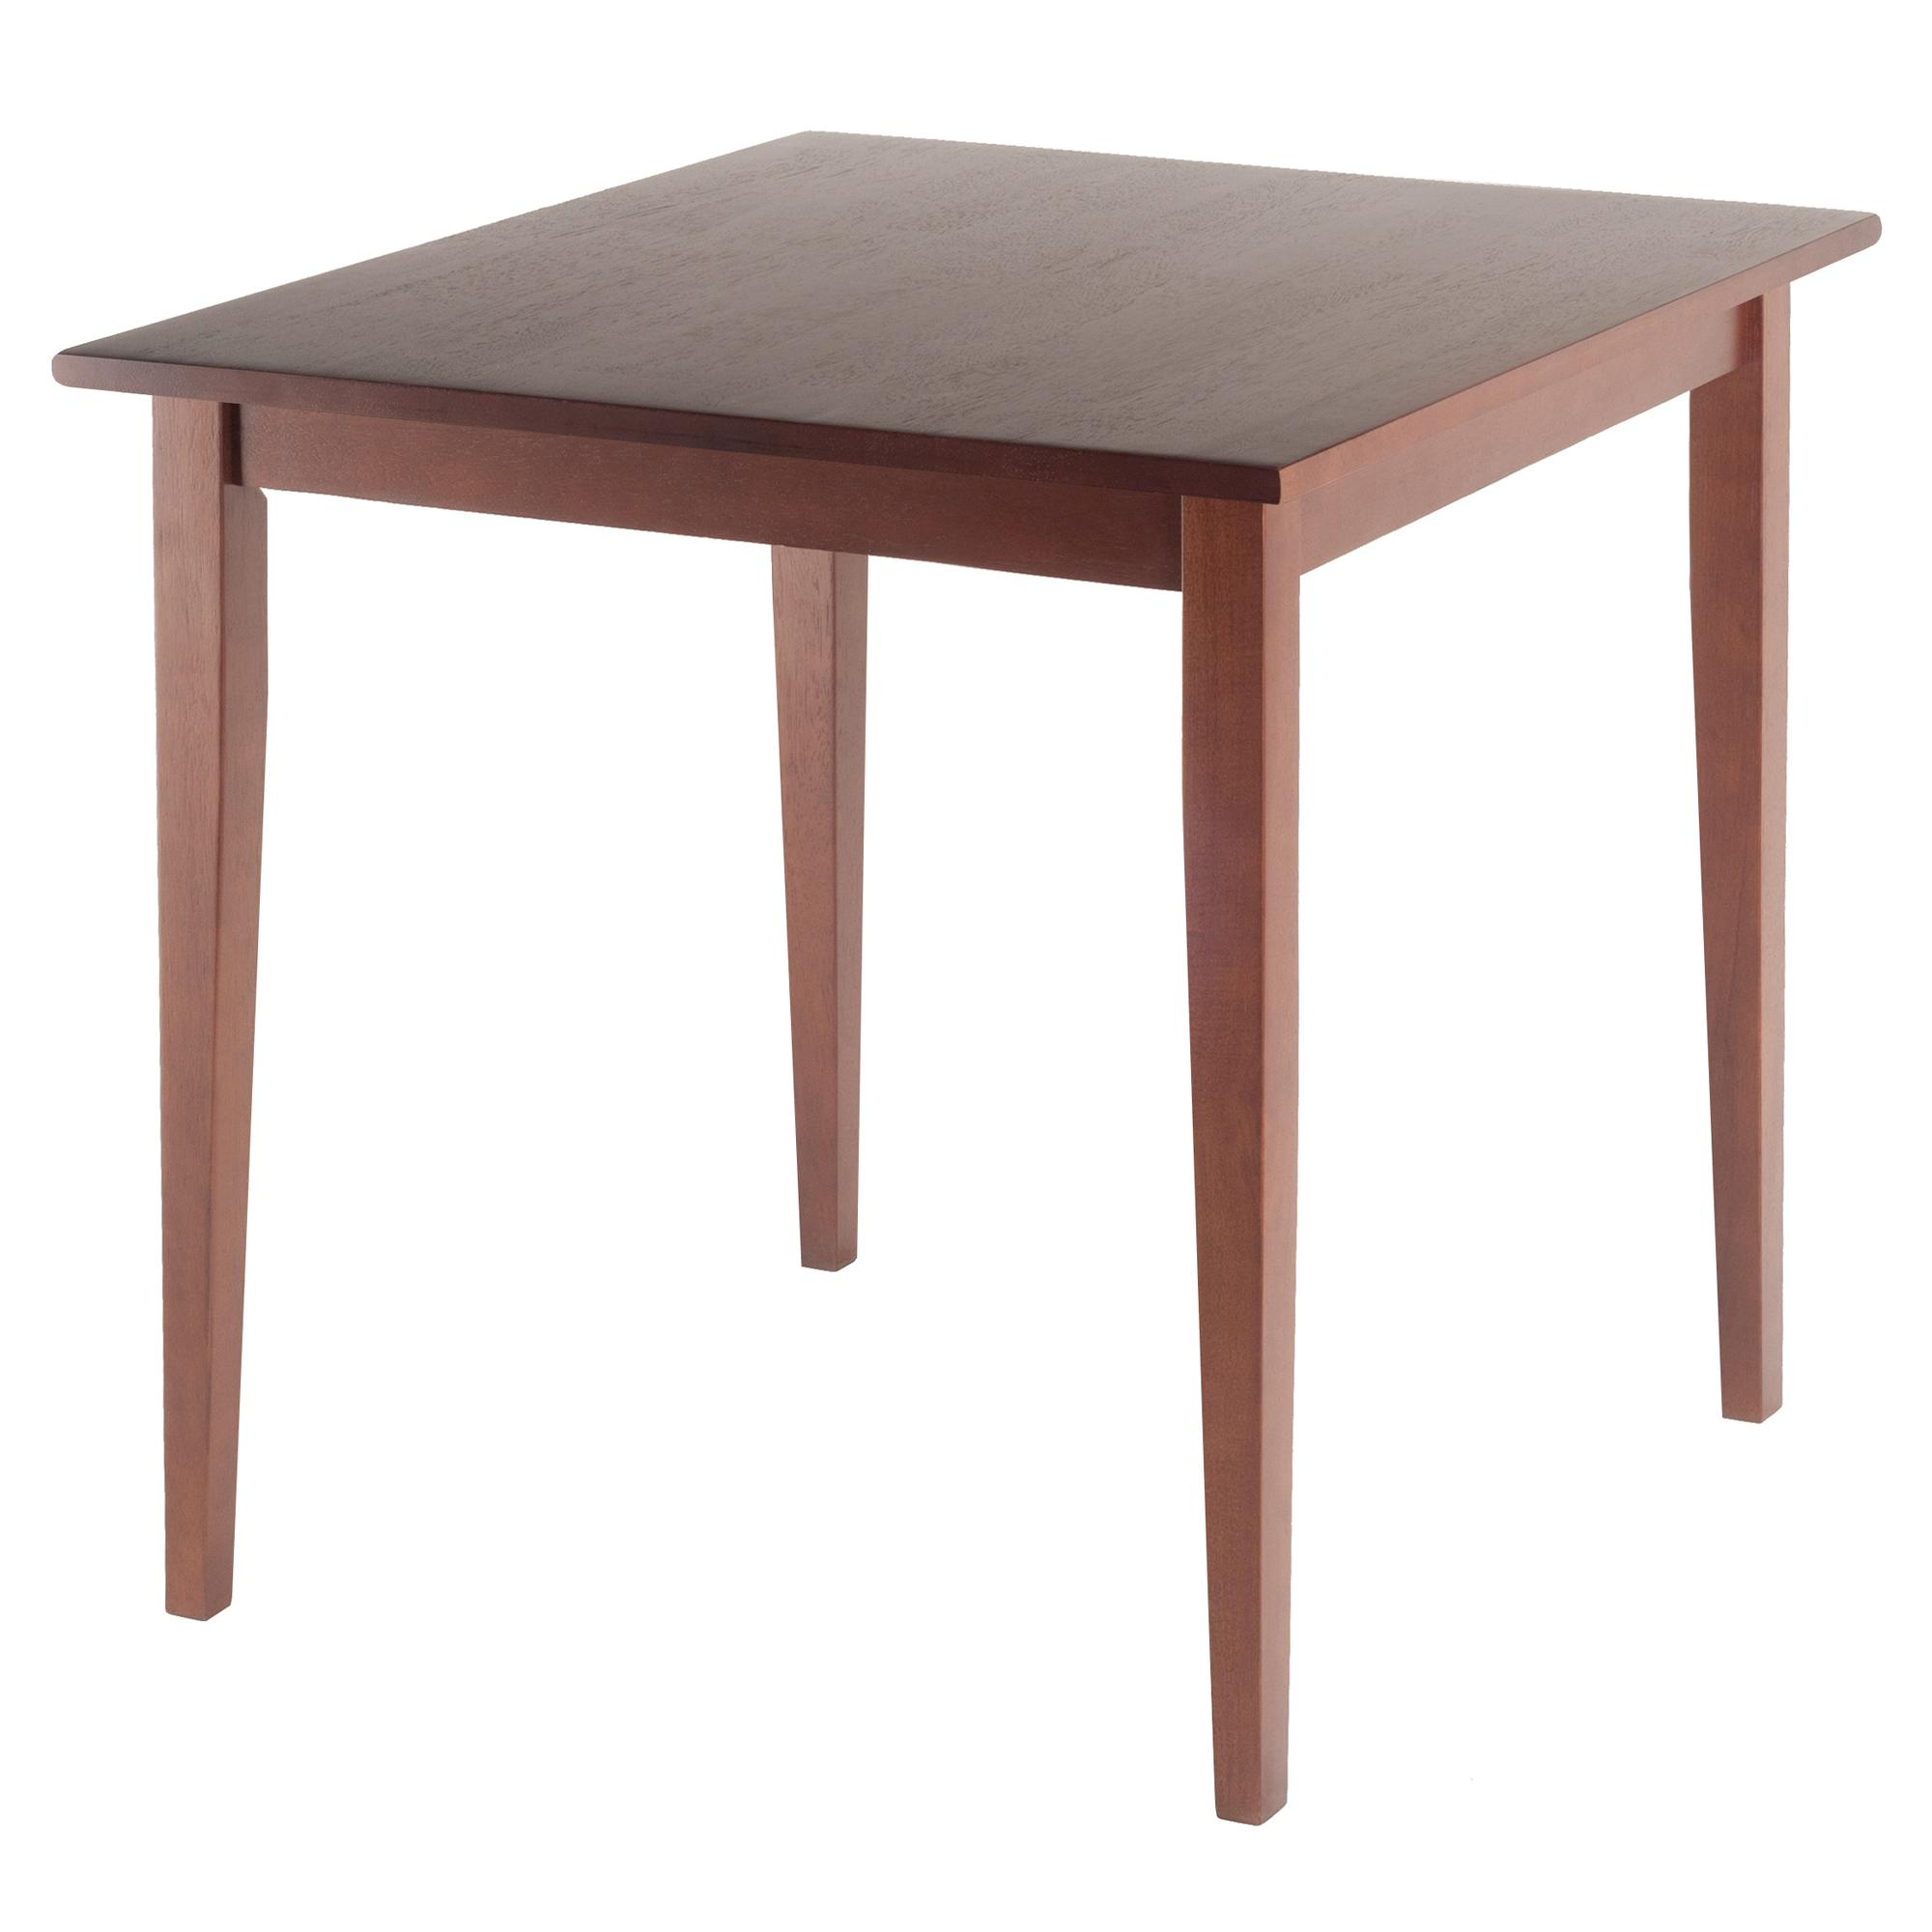 Winsome wood groveland square dining table in antique walnut finish tables - Dining table images ...